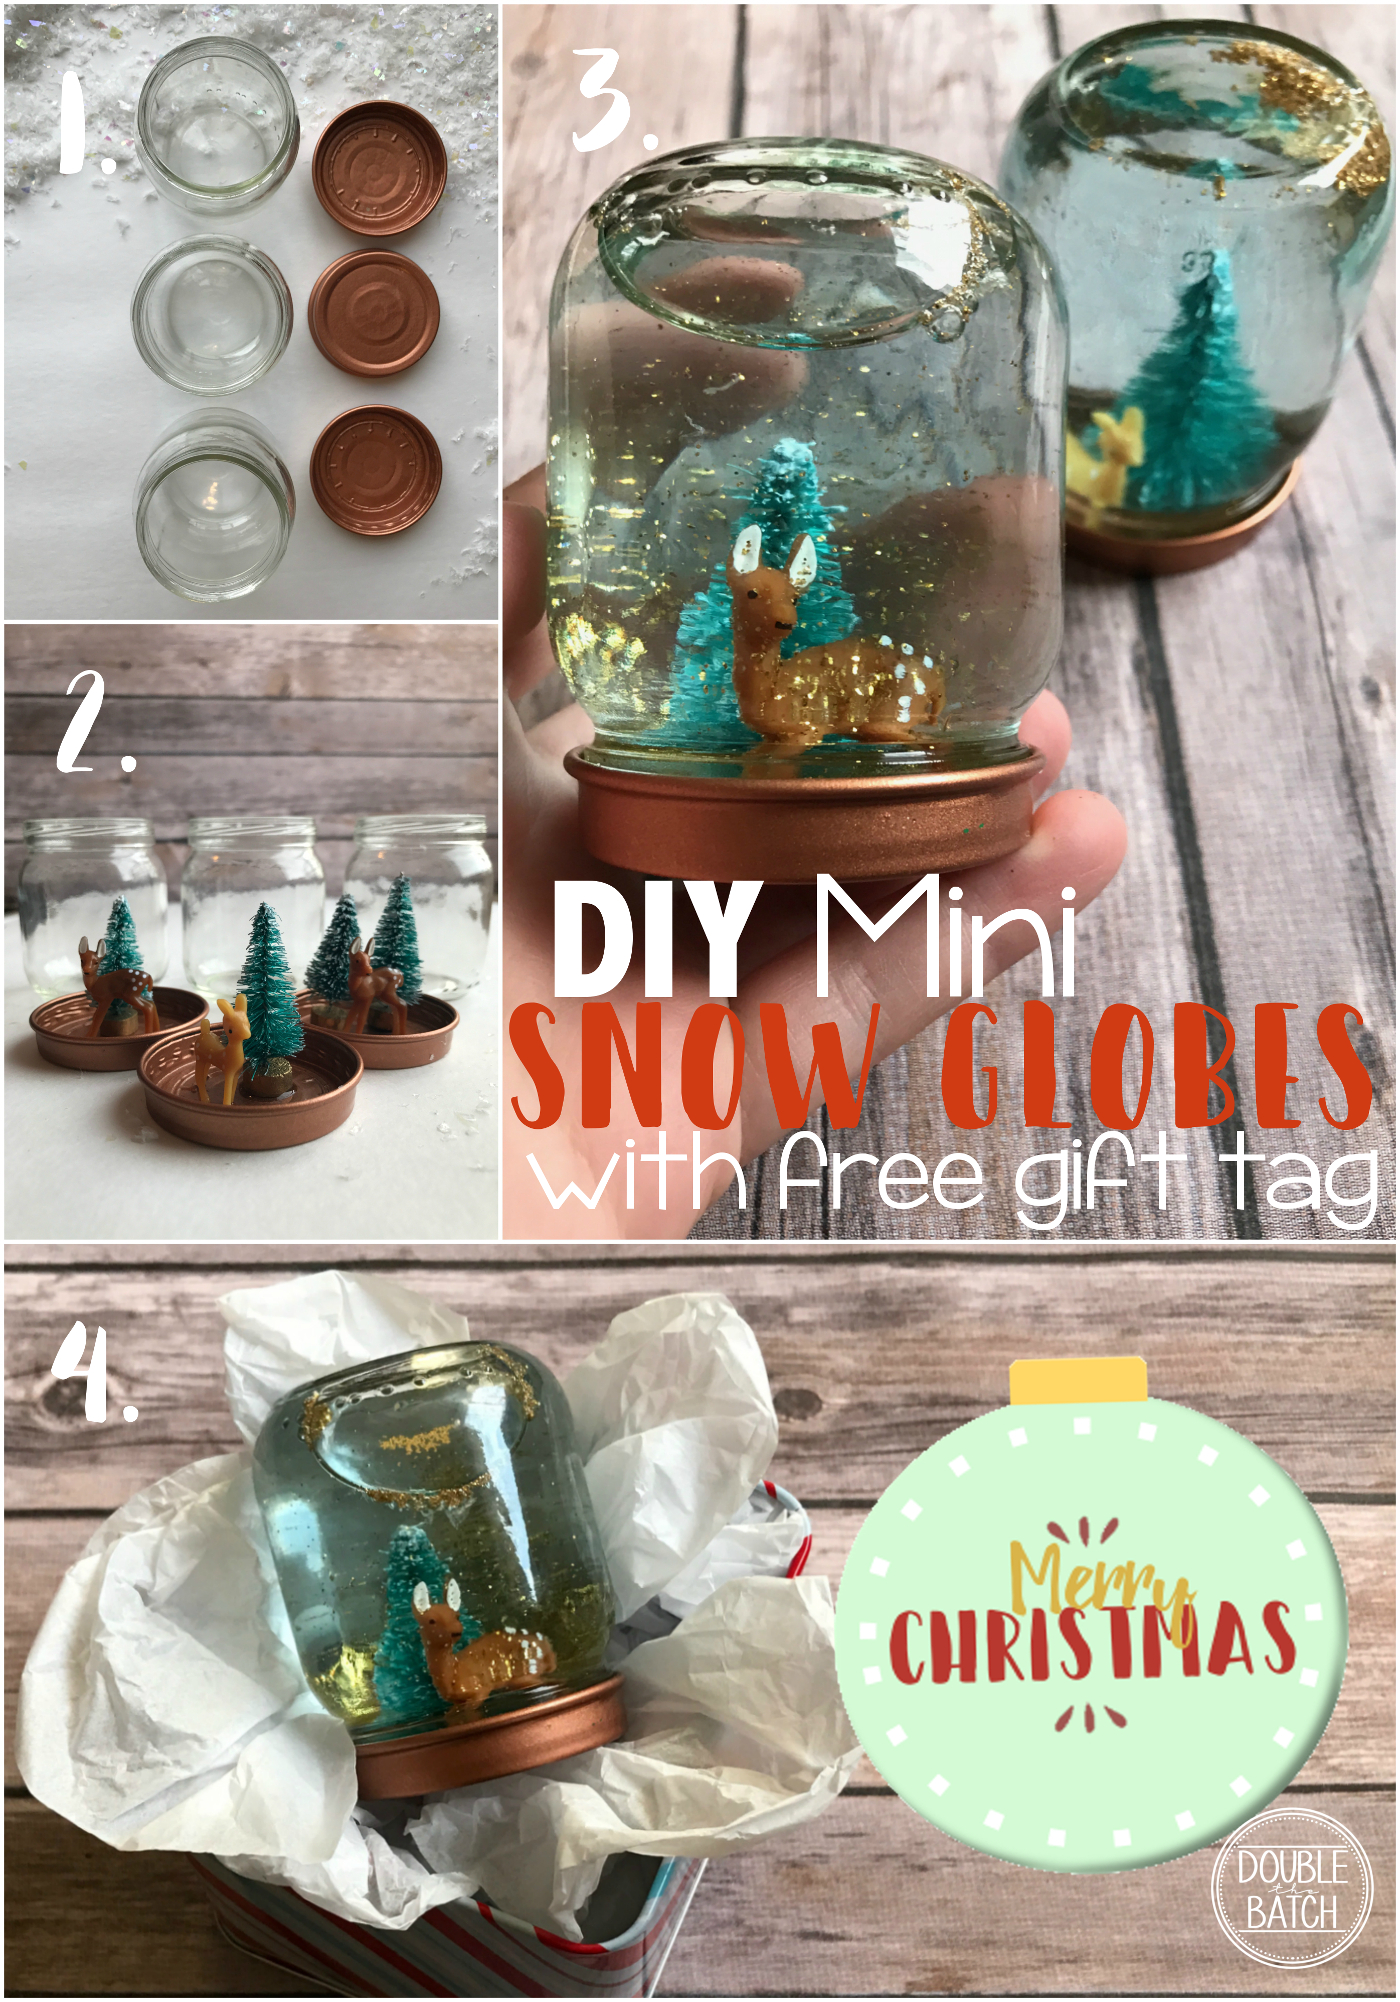 These DIY mini snow globes are perfect for when you need multiple affordable gifts to handout or accompany a Christmas gift basket. FREE PRINTABLE INCLUDED